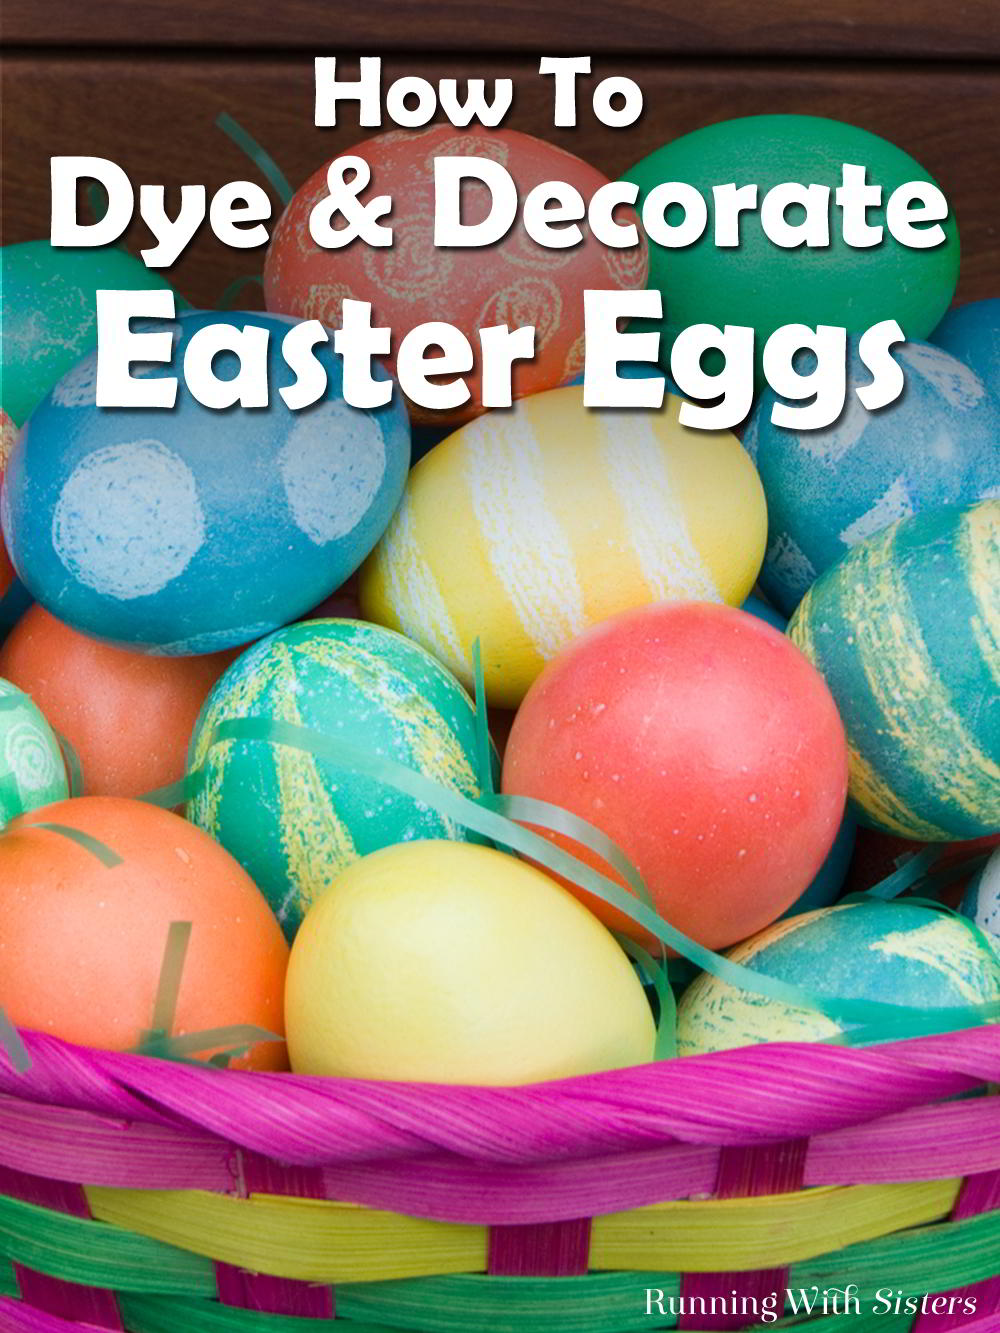 How To Dye Easter Eggs Running With Sisters